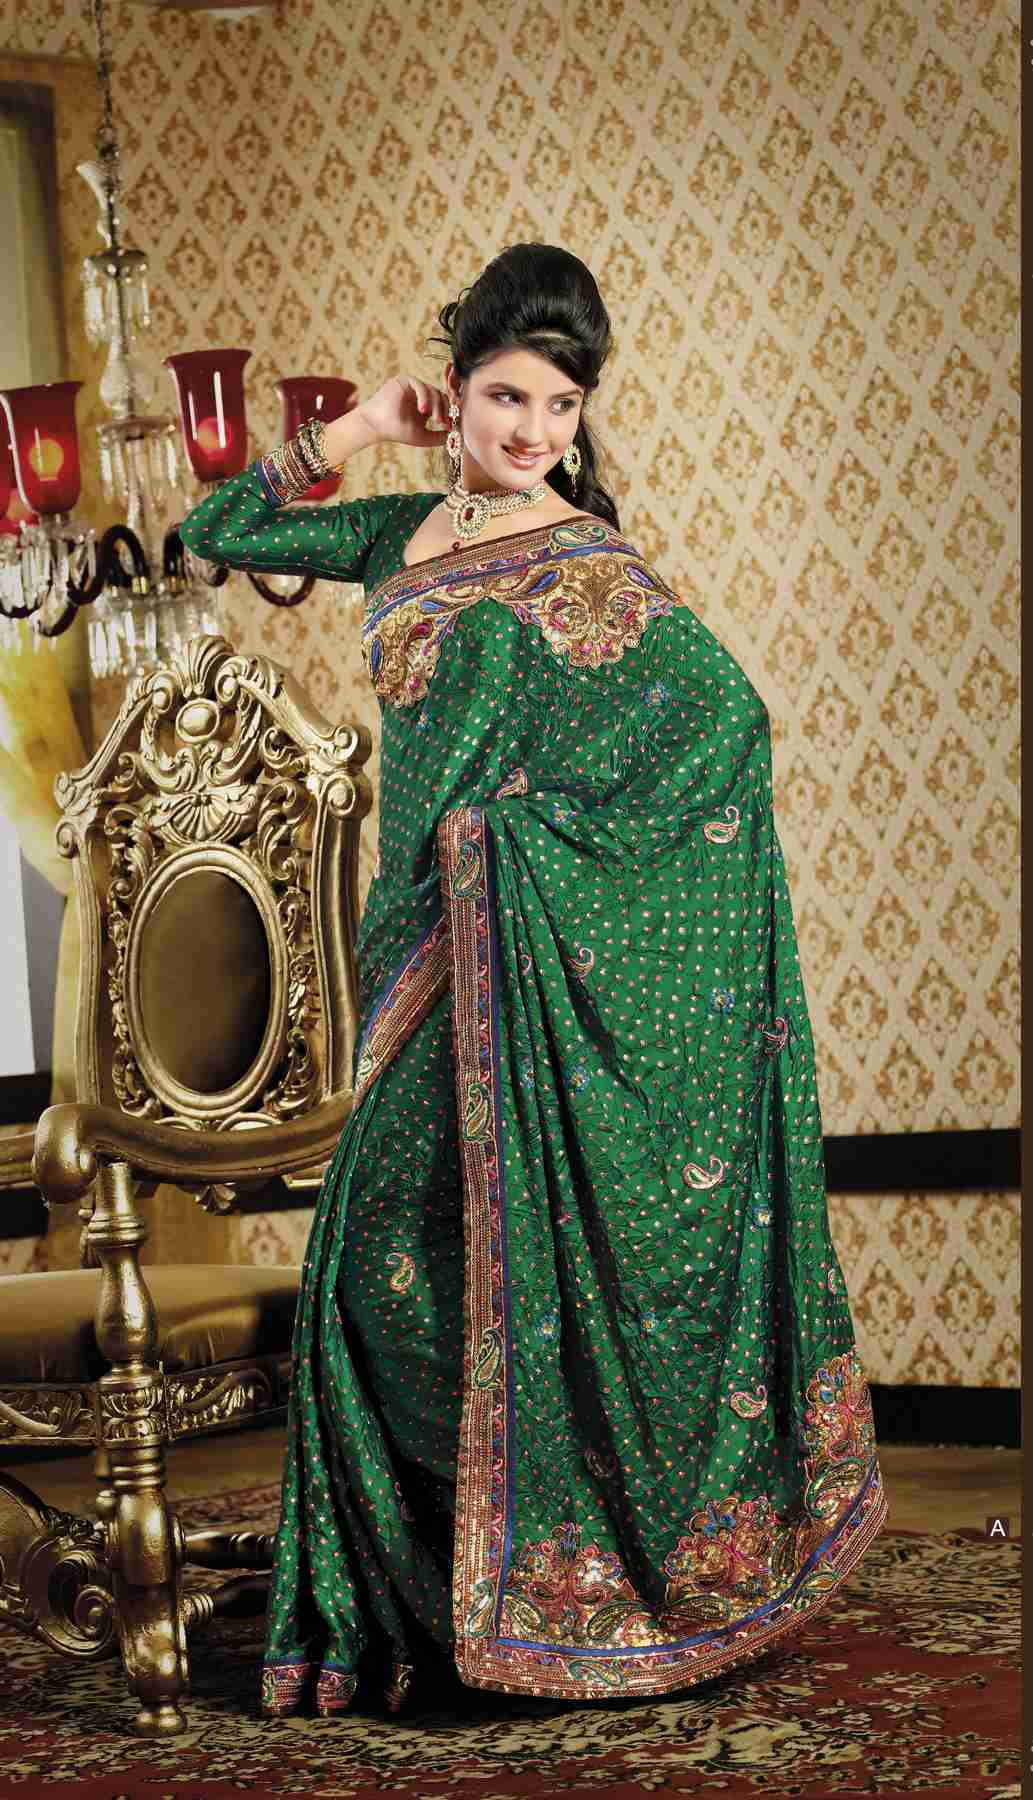 Indian Selections Chintanika Bottle Green Faux Crepe Luxury Party Wear Sari saree at Sears.com